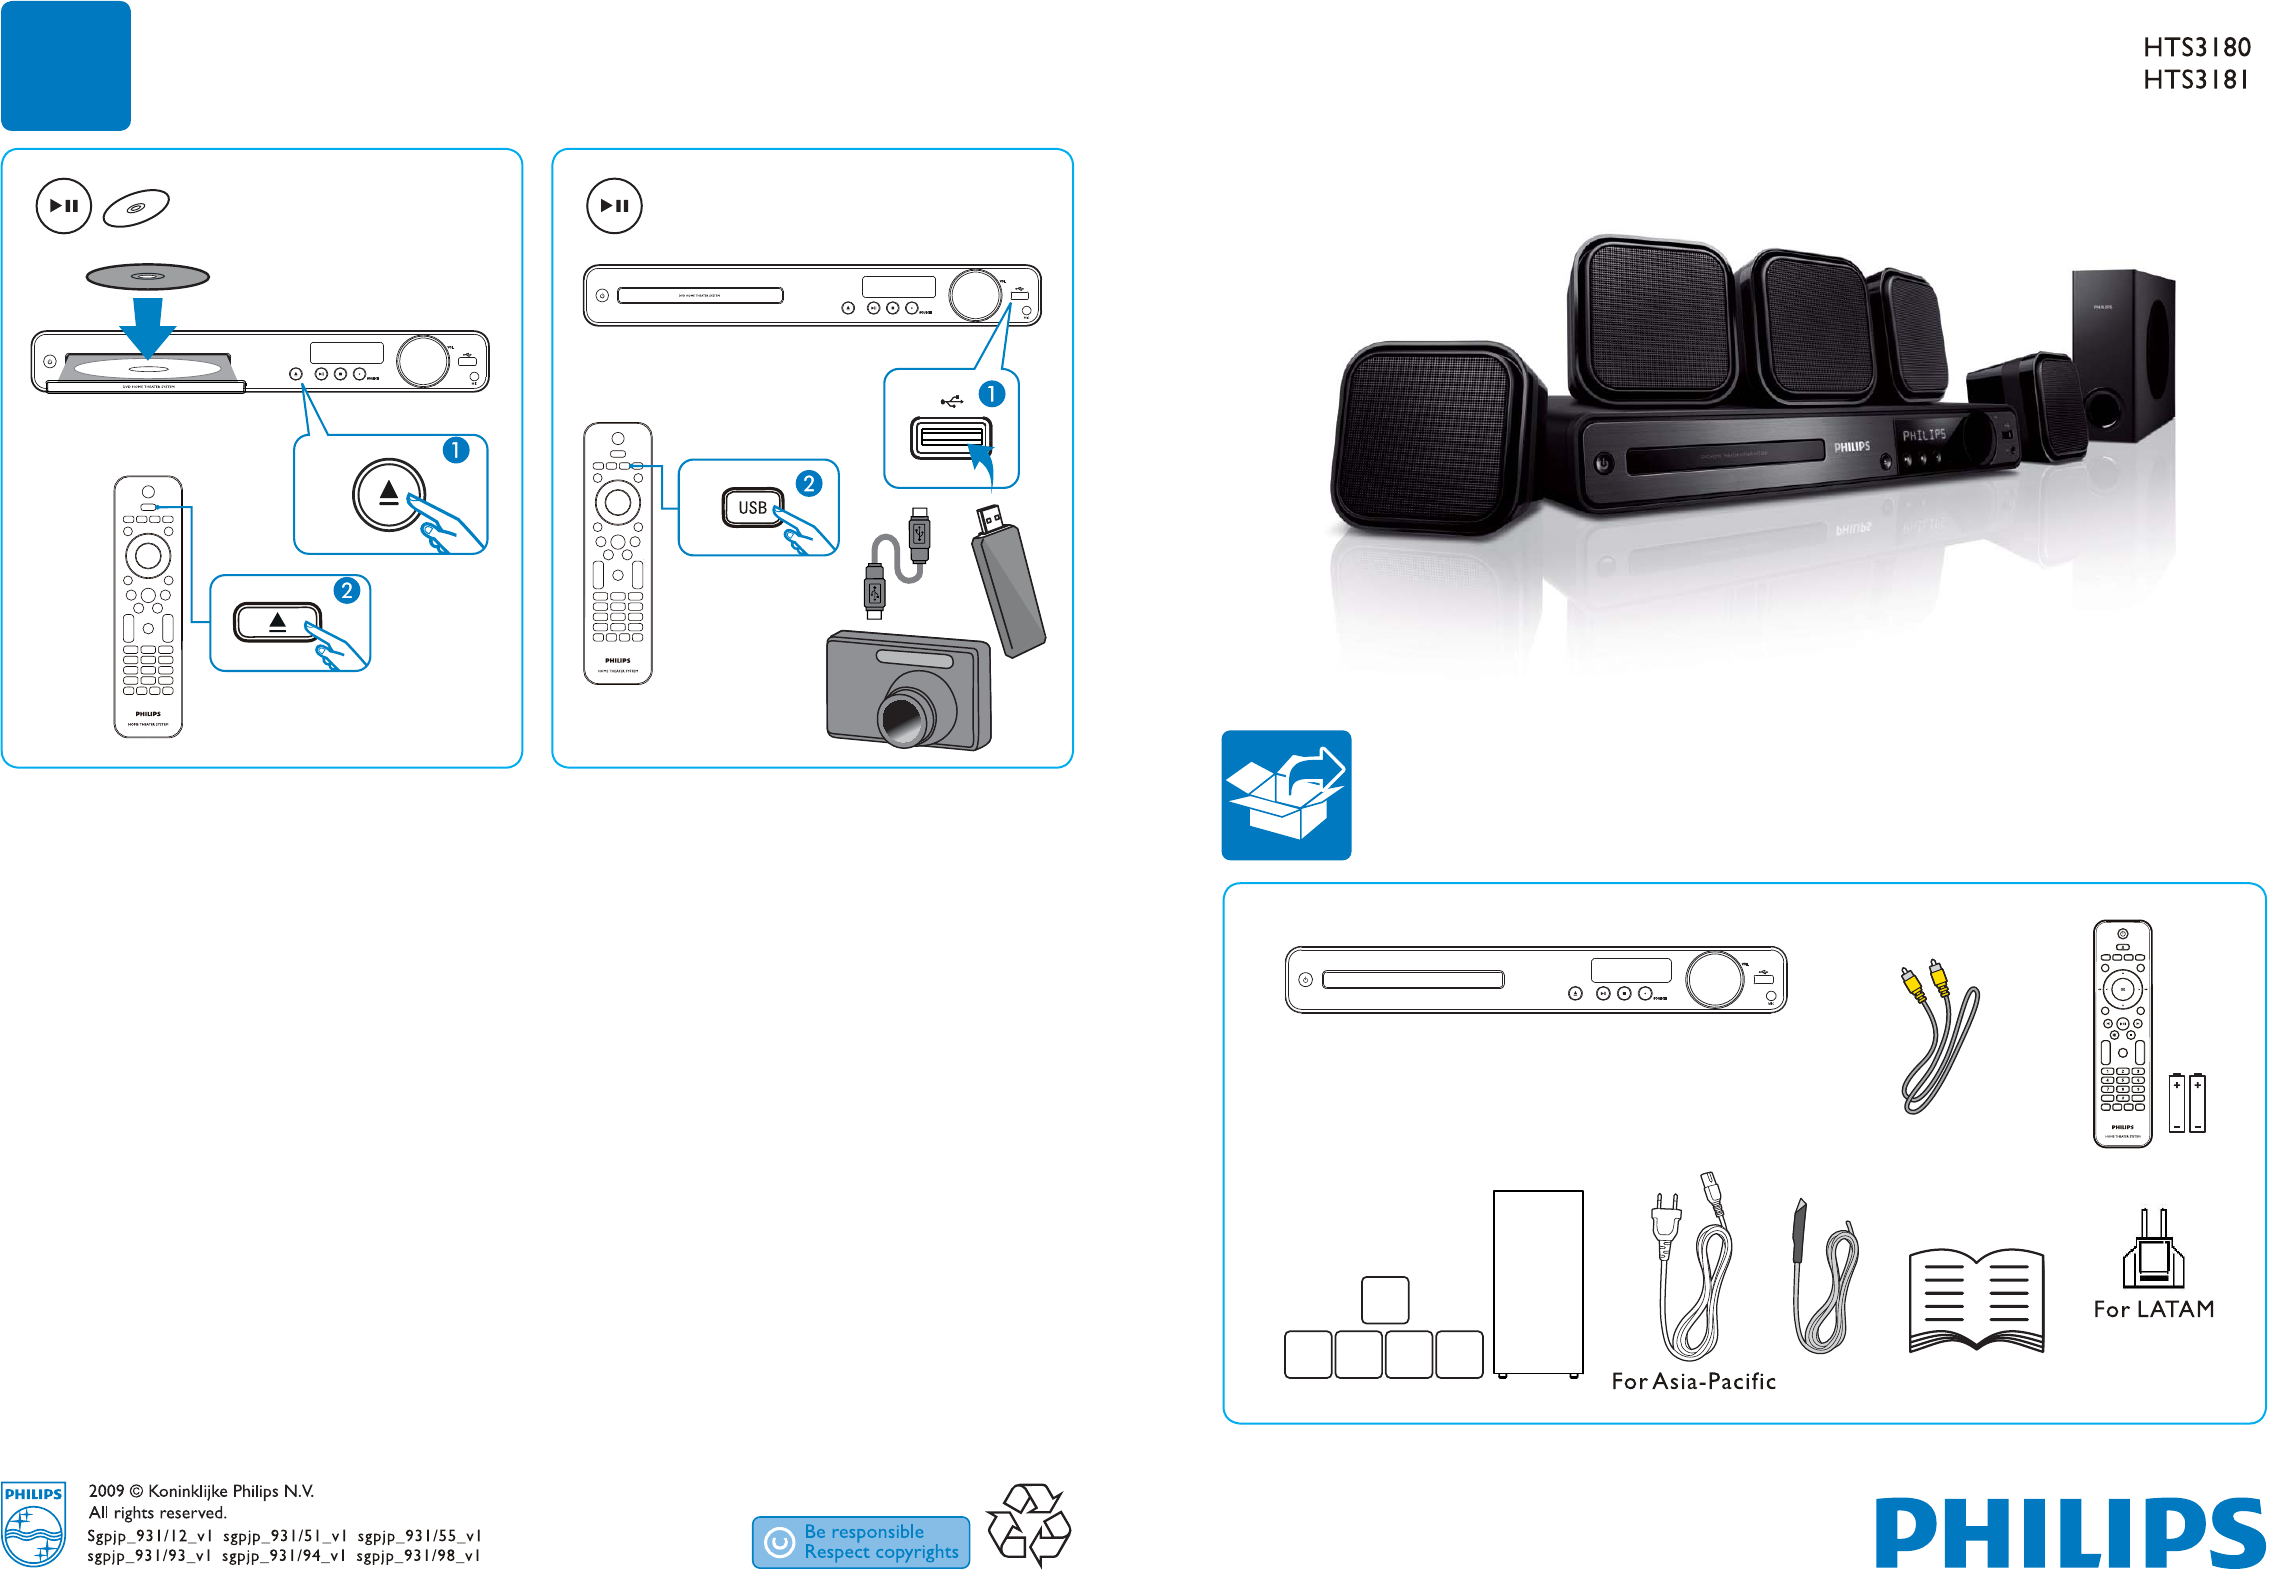 philips home theater system hts3180 user guide manualsonline com rh manualsonline com home theater philips lx3600d manual philips dvd home theater system hts3154 manual